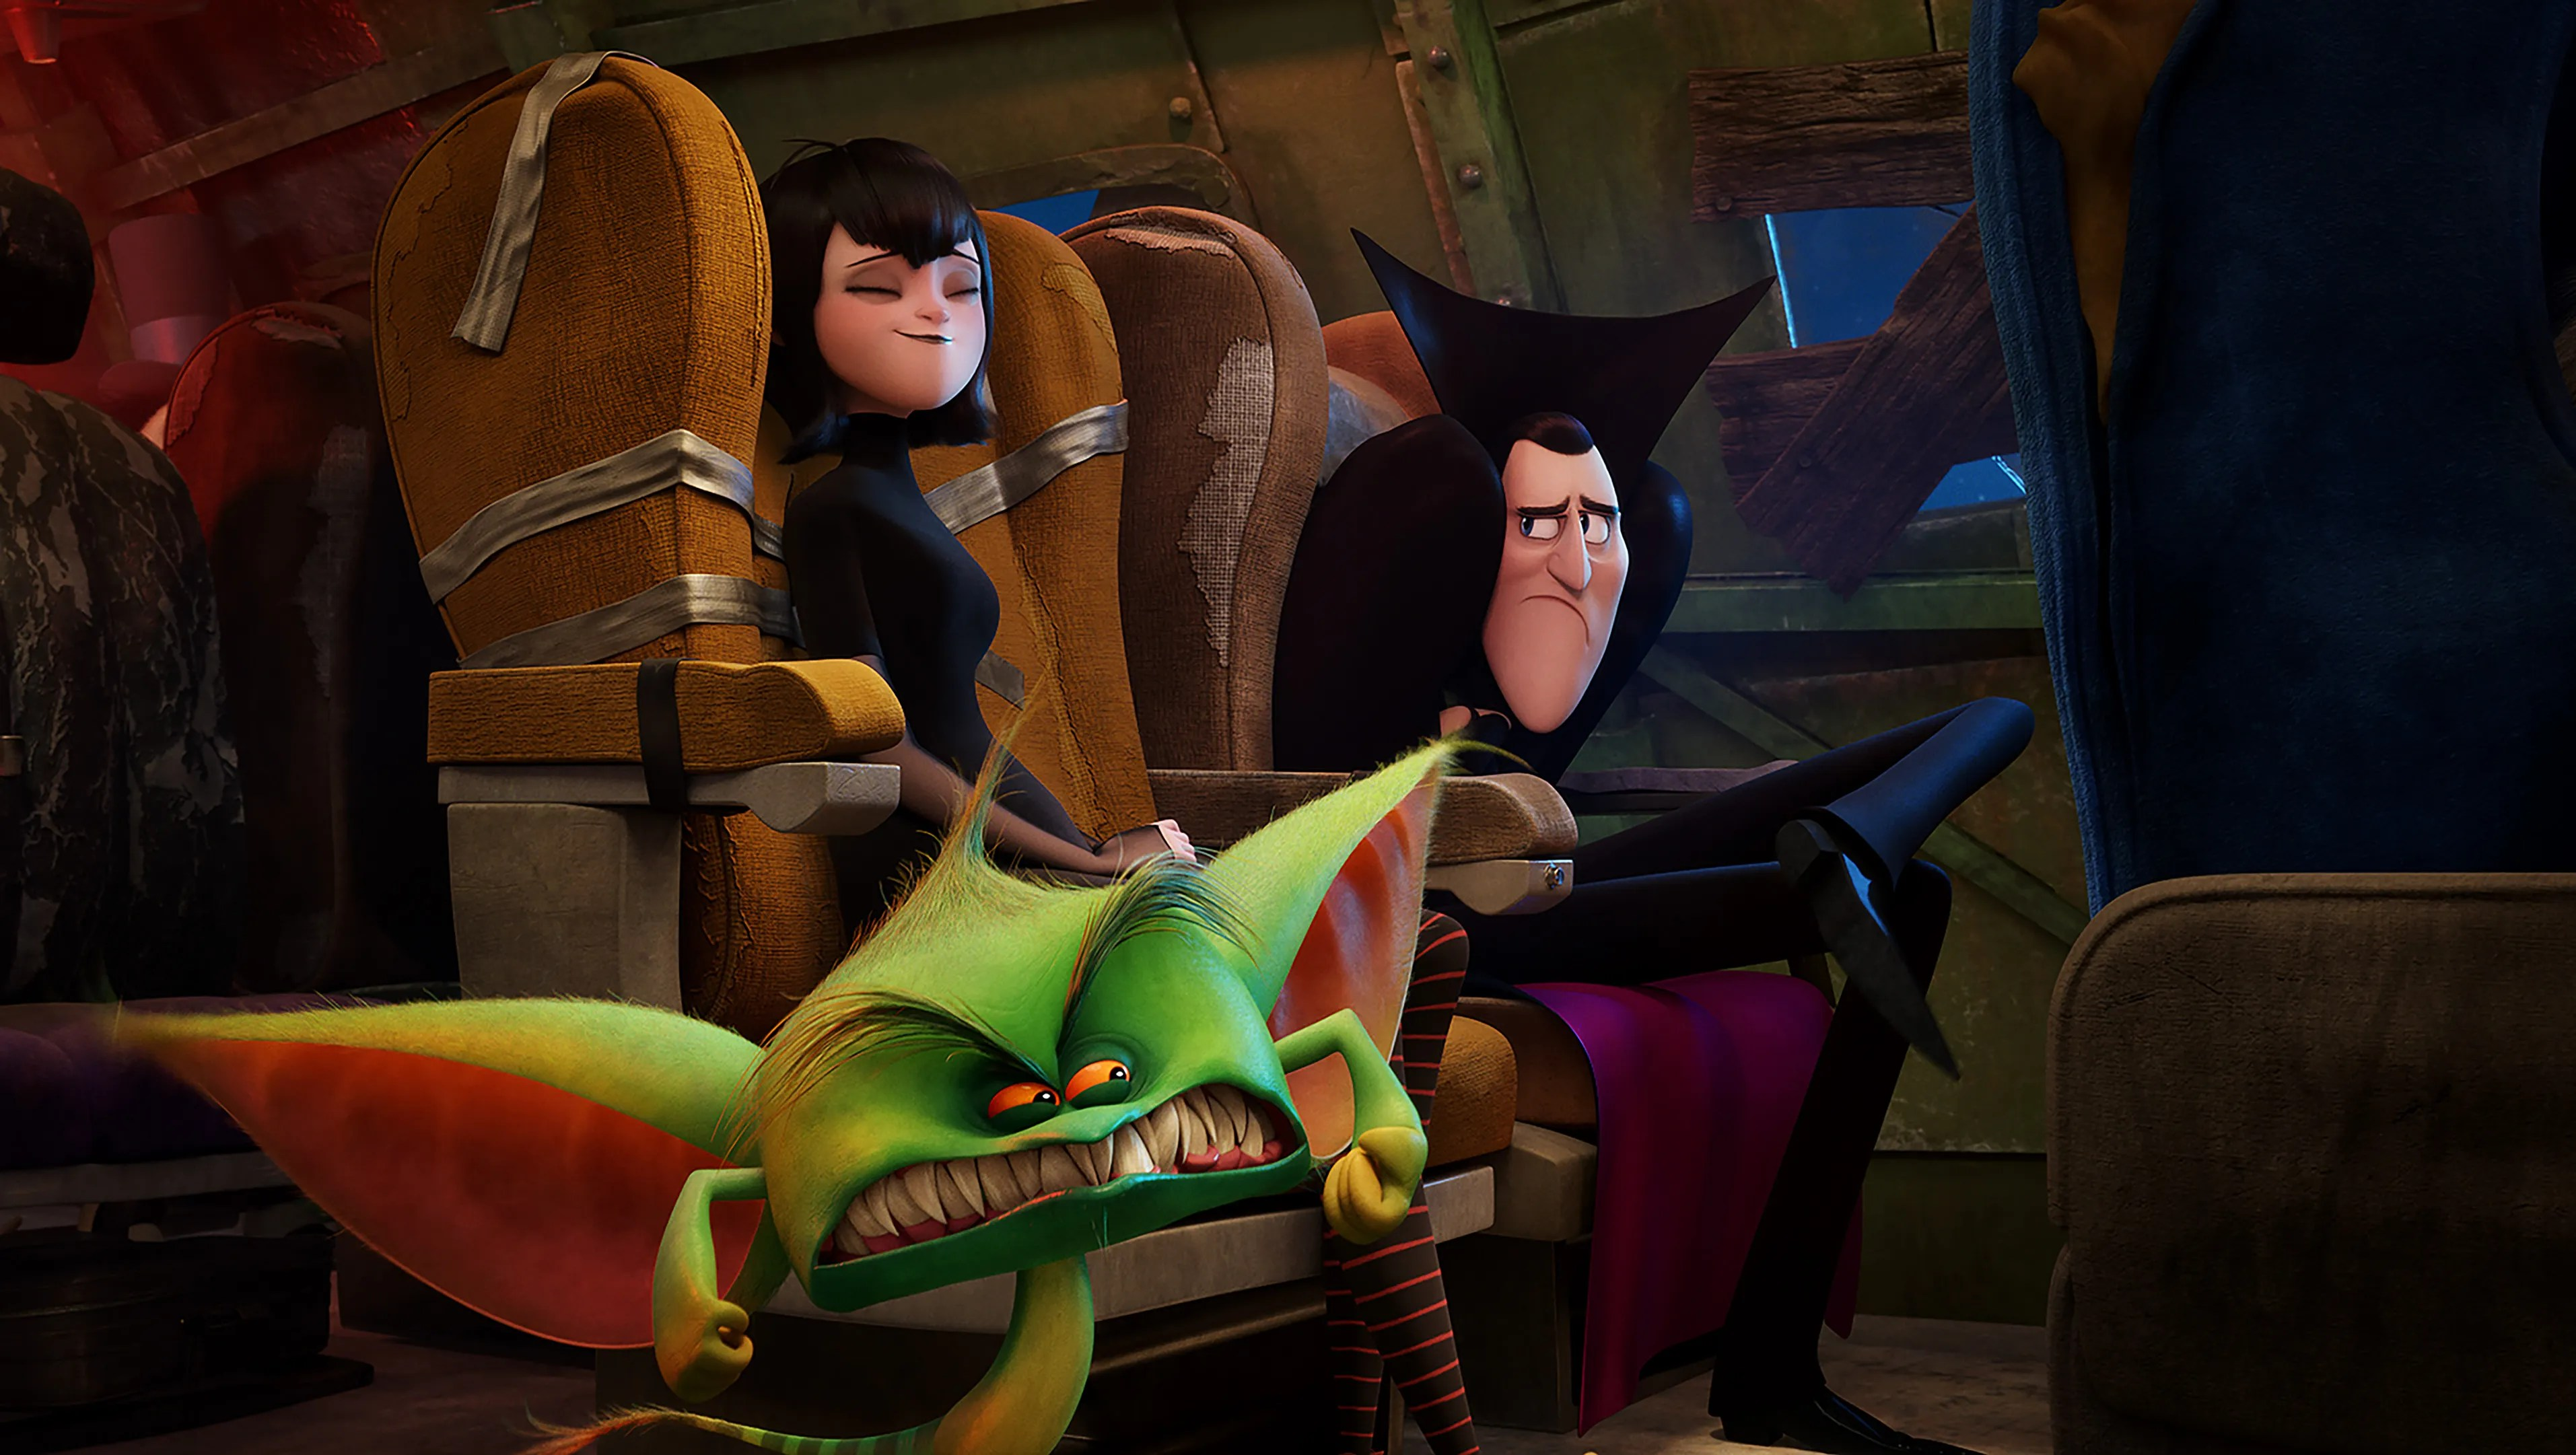 'hotel Transylvania 3' Vampire Love Abounds In Silly